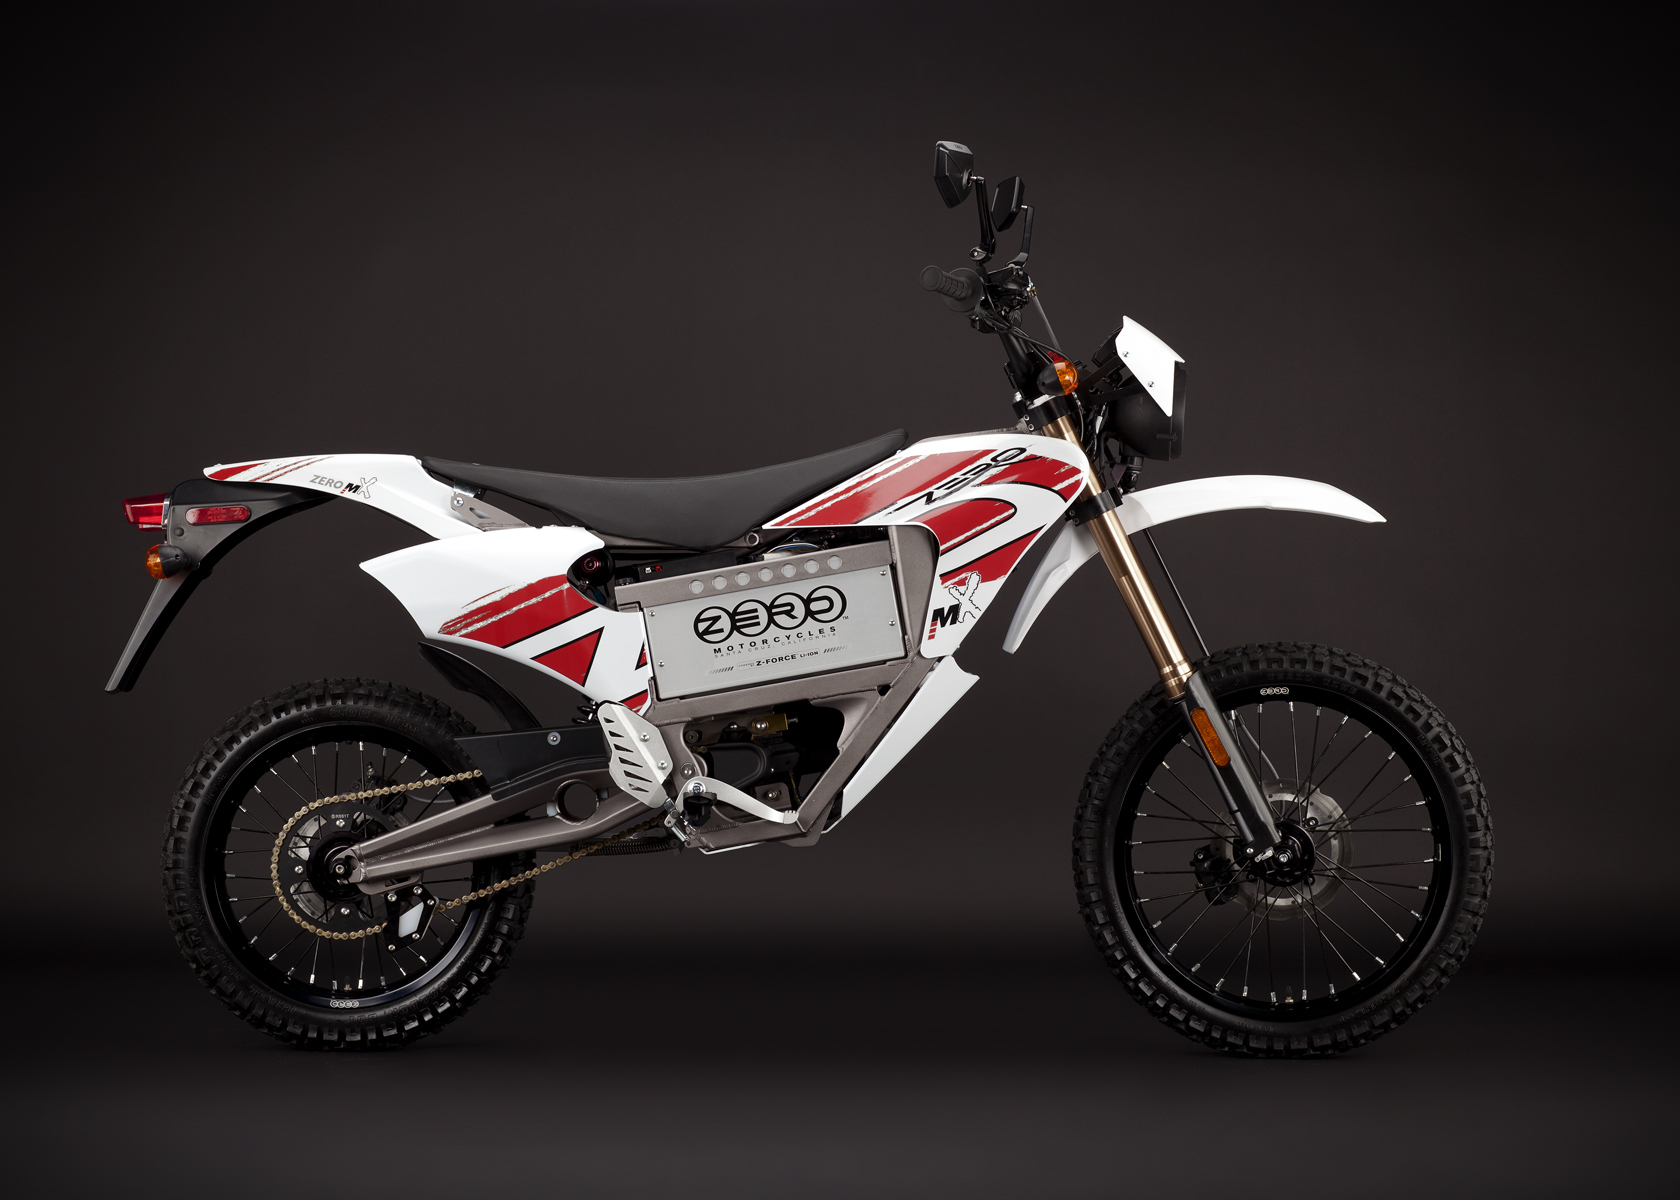 '.2011 Zero MX Electric Motorcycle: Right Profile, Street Legal Model.'